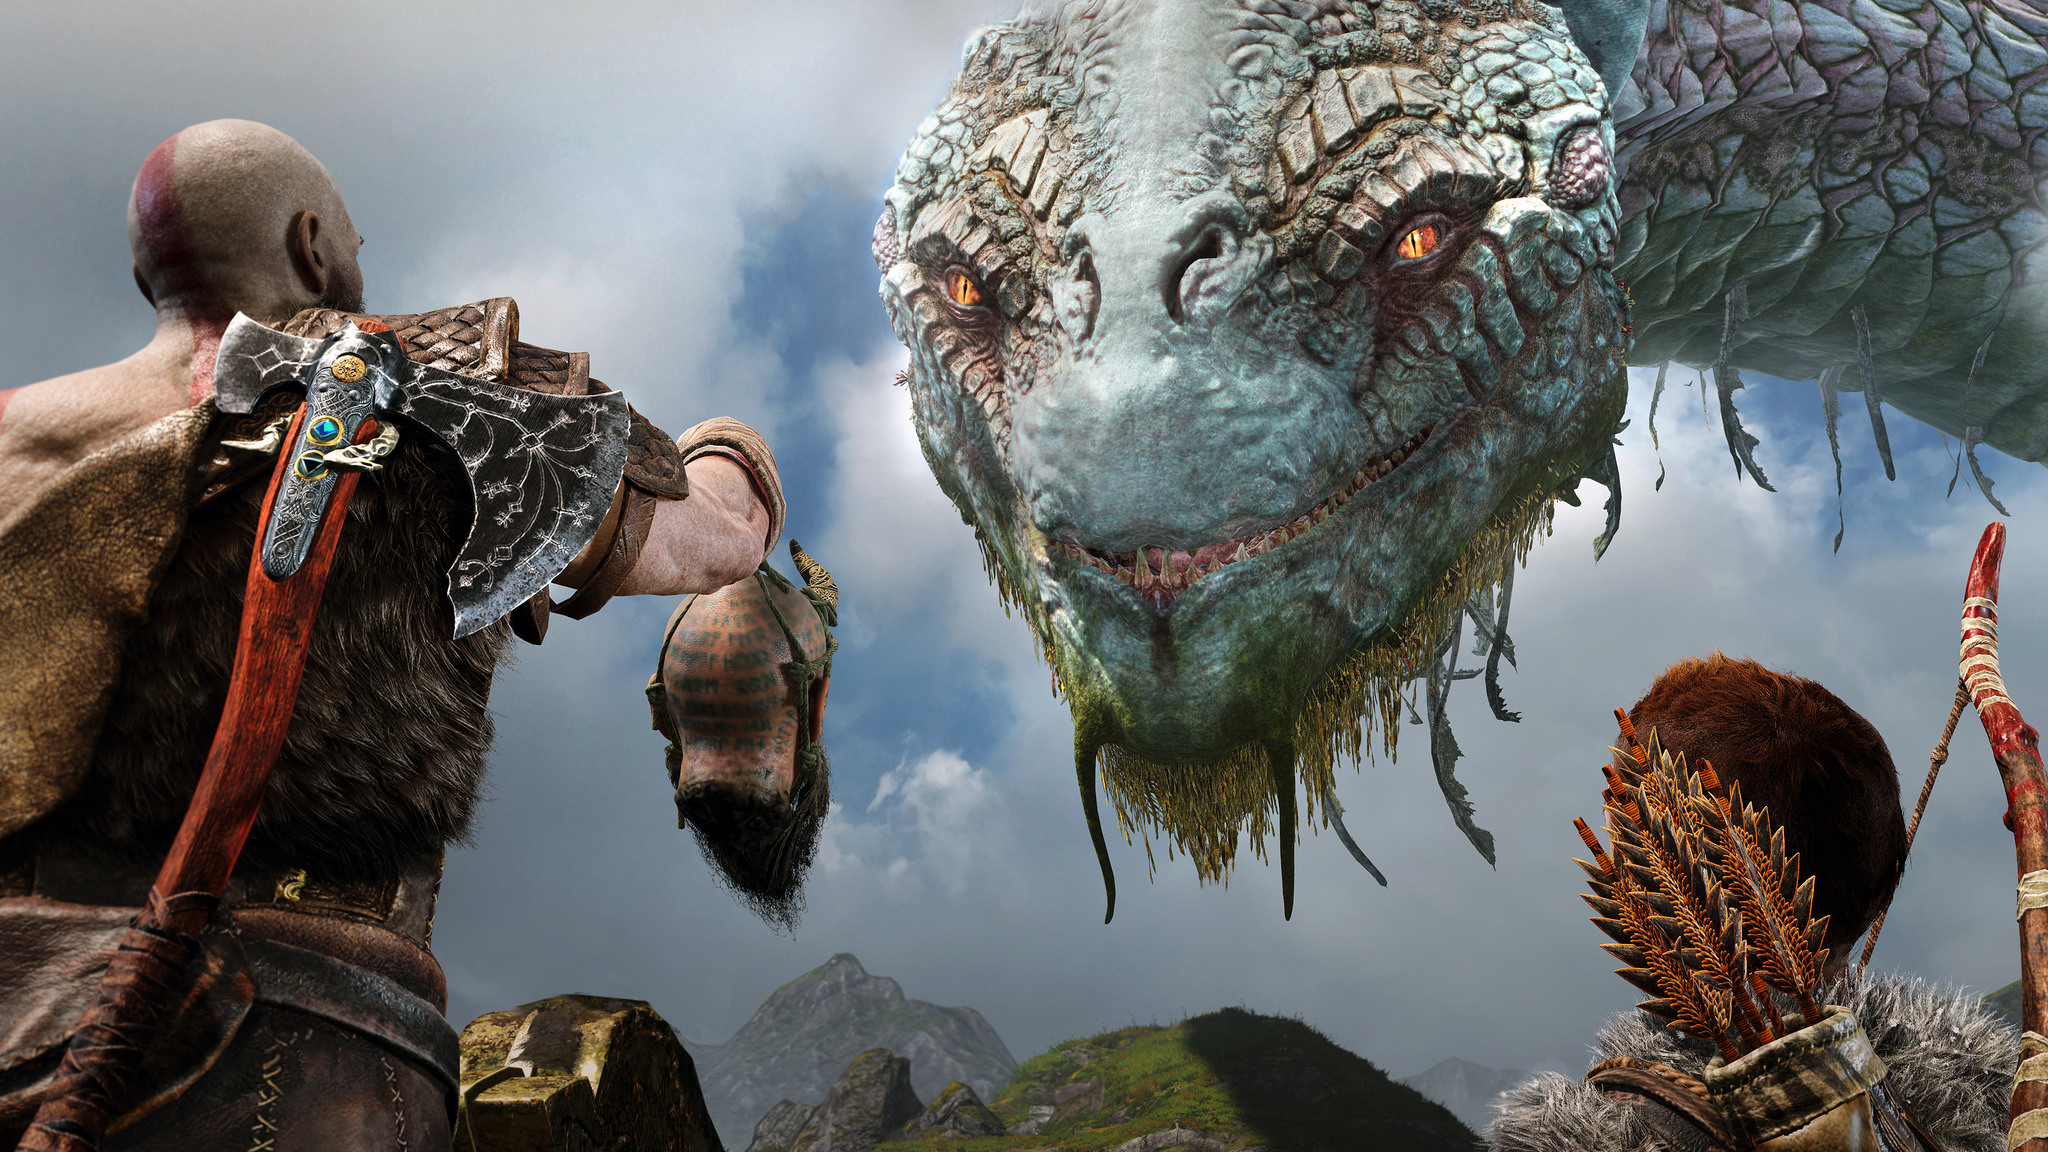 Fracas Pre-Orders de God of War preocupam Sony — Rumor